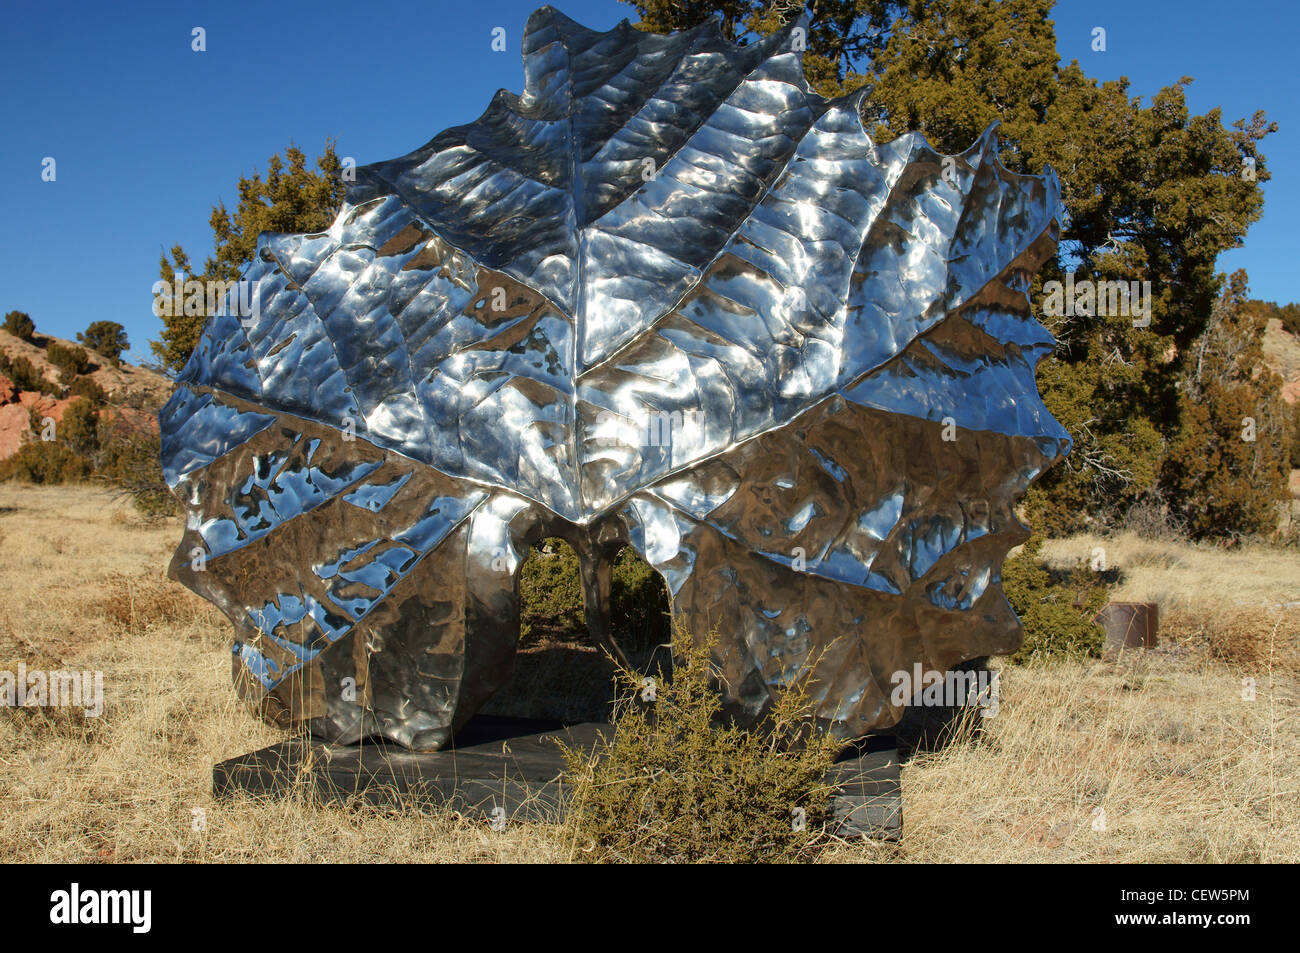 garden of the gods lone butte new mexico metal flower artwork nm sculpture center scenic convoluted geology - Stock Image